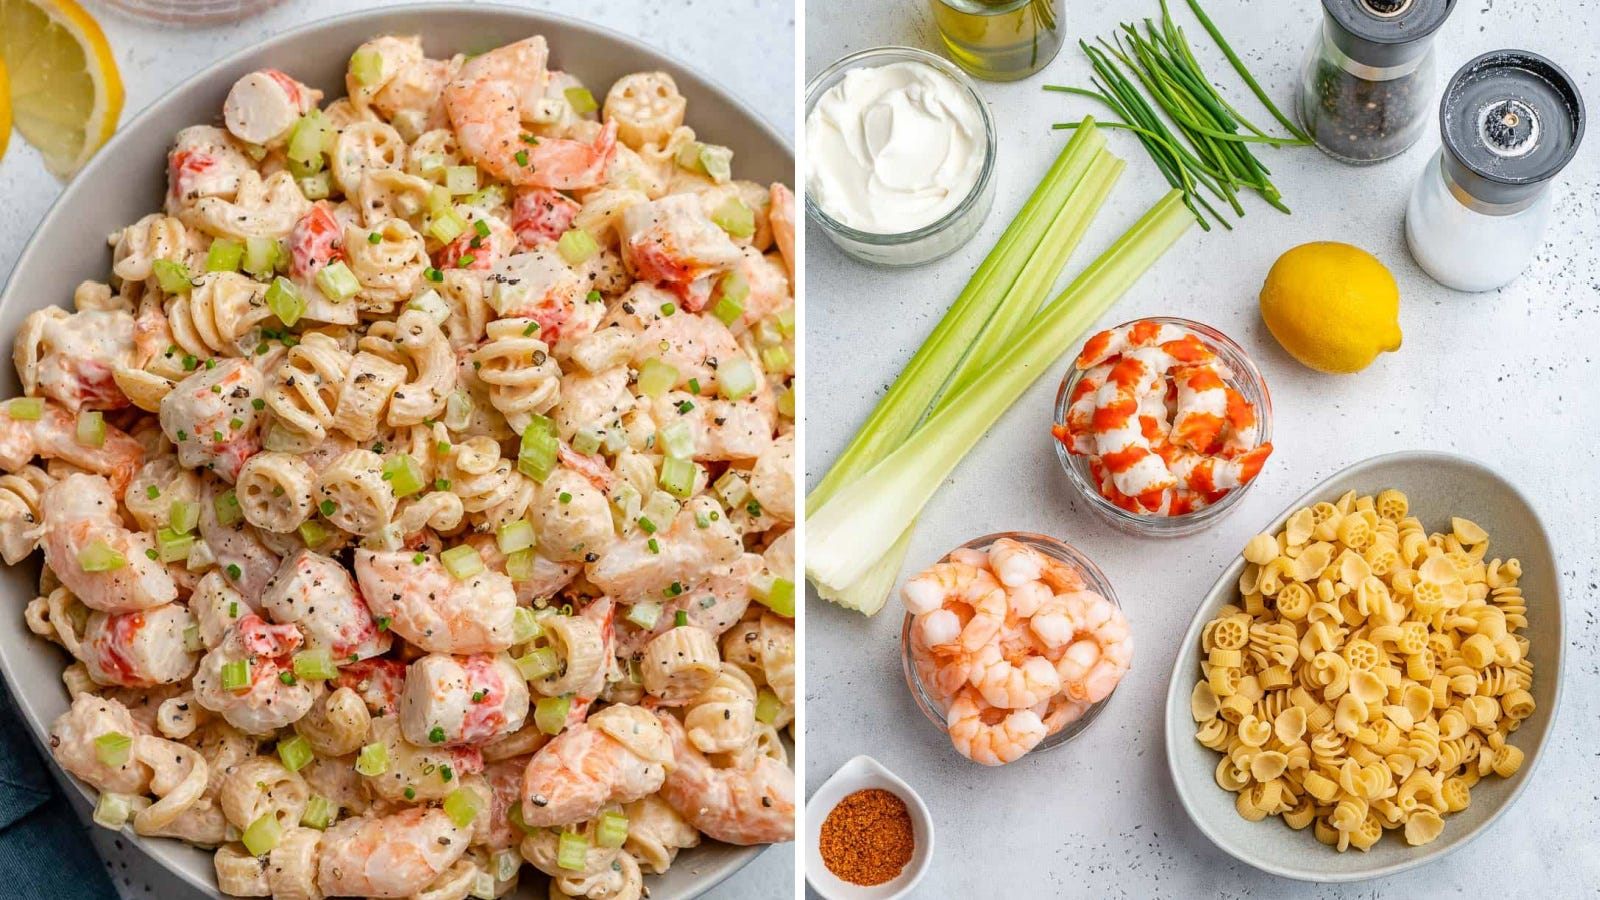 Two images: The left image is of shrimp and crab pasta salad, and the right image is of the separate ingredients used in the meal.